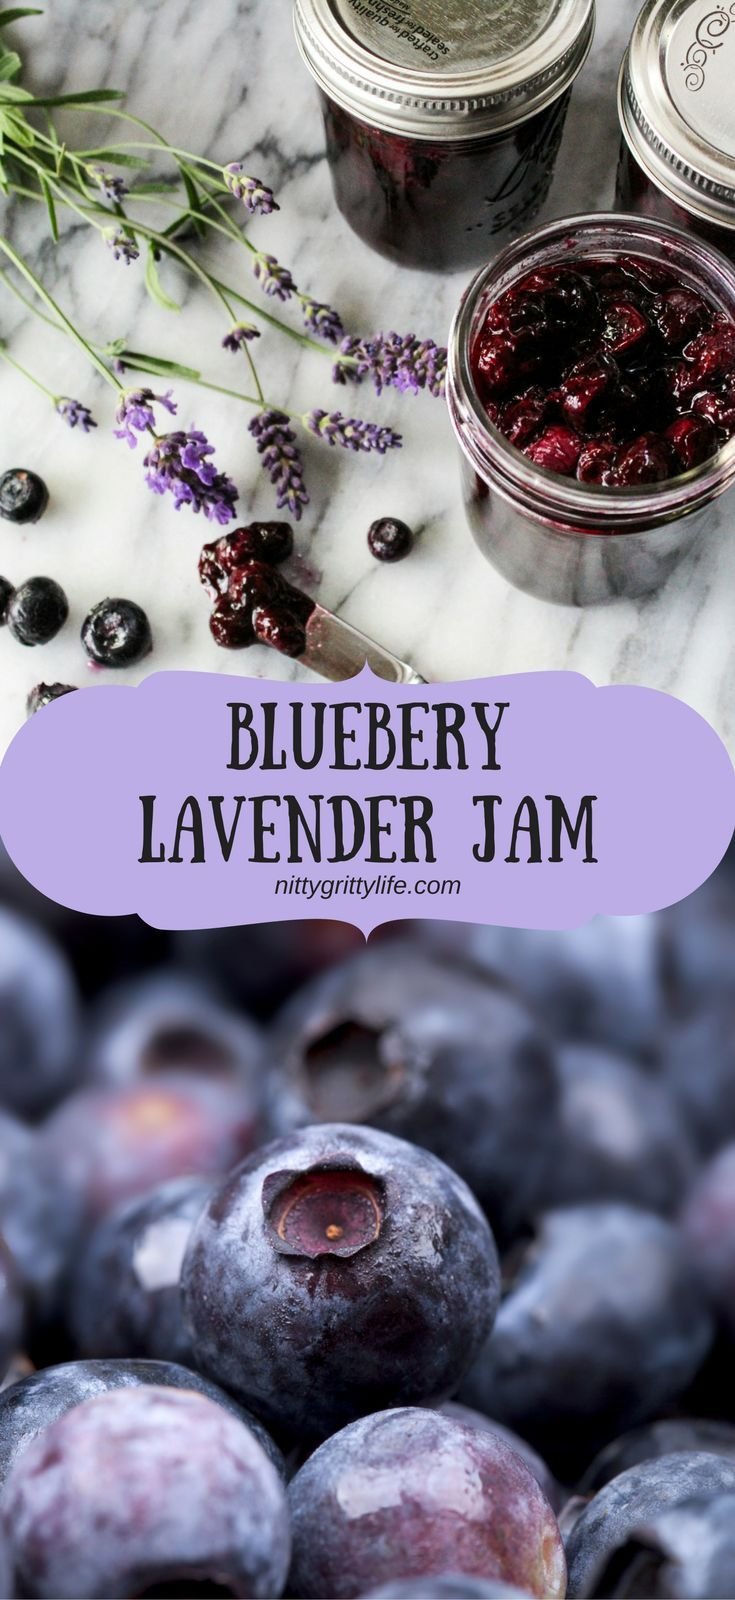 Fruity and floral, this blueberry and lavender jam captures my favorite aromas and flavors of summer.